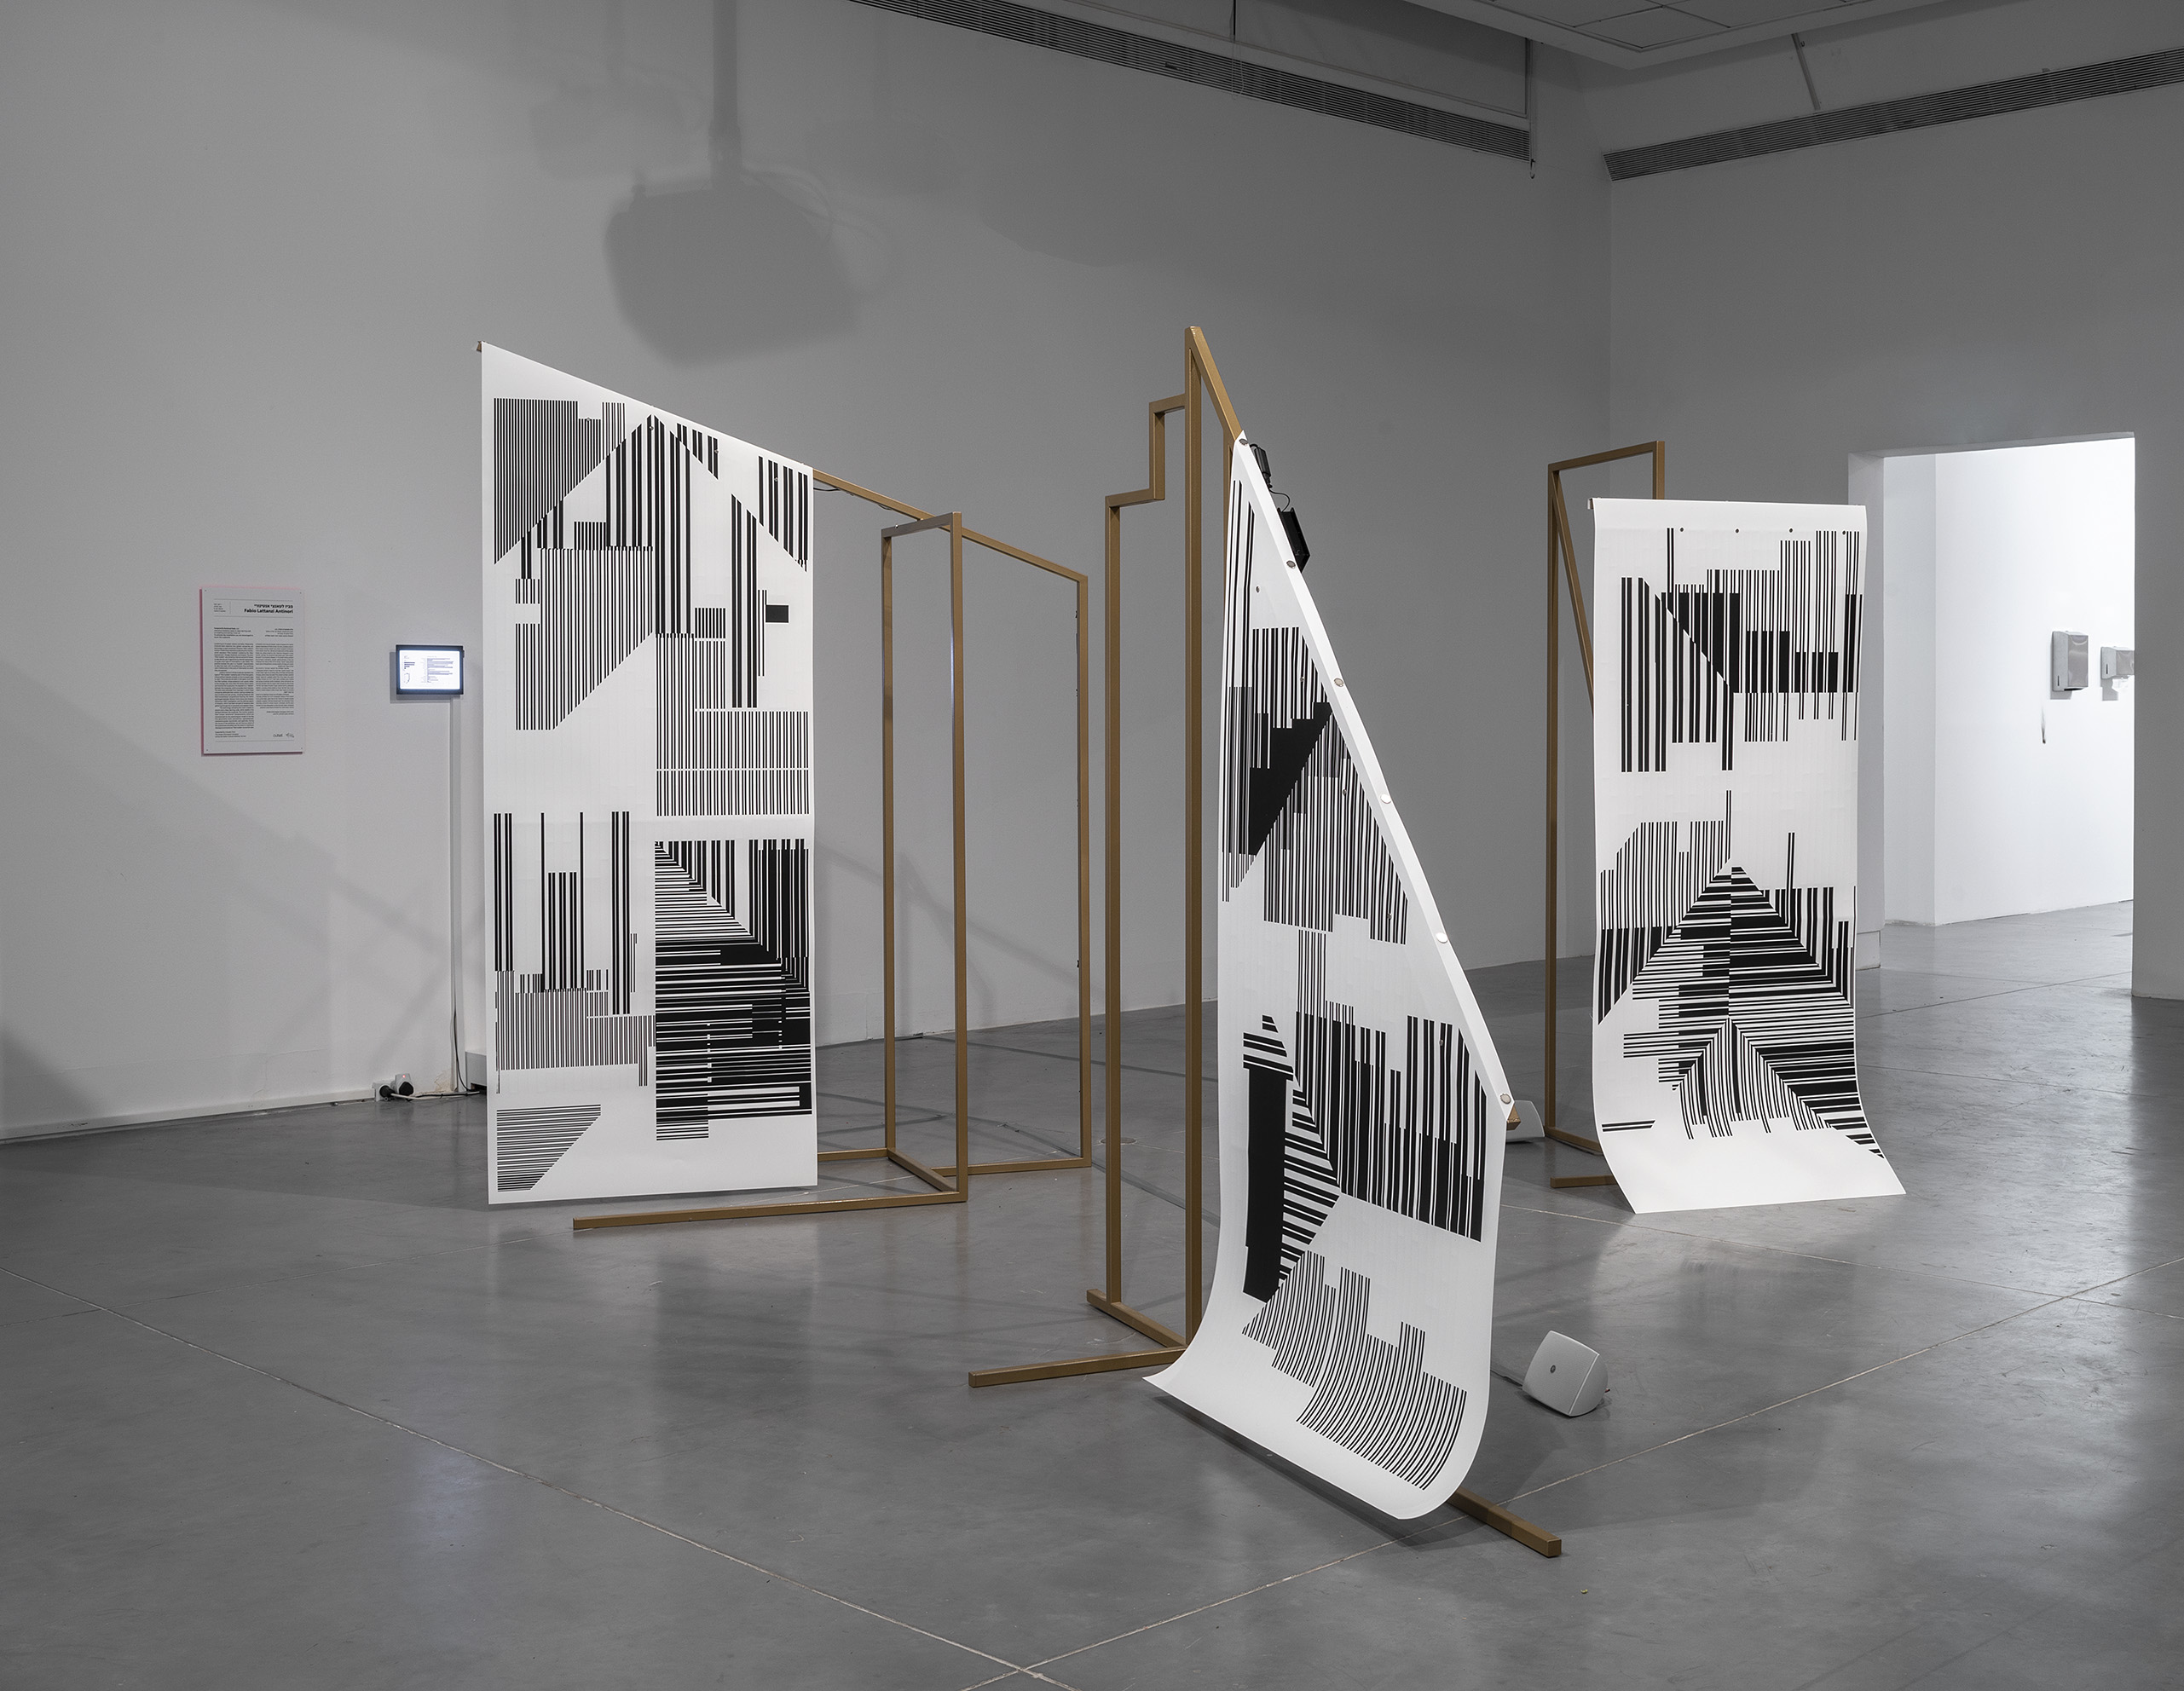 Temporarily Enslaved Gods, by Fabio Lattanzi Antinori, installation View at the Petach Tikva Museum